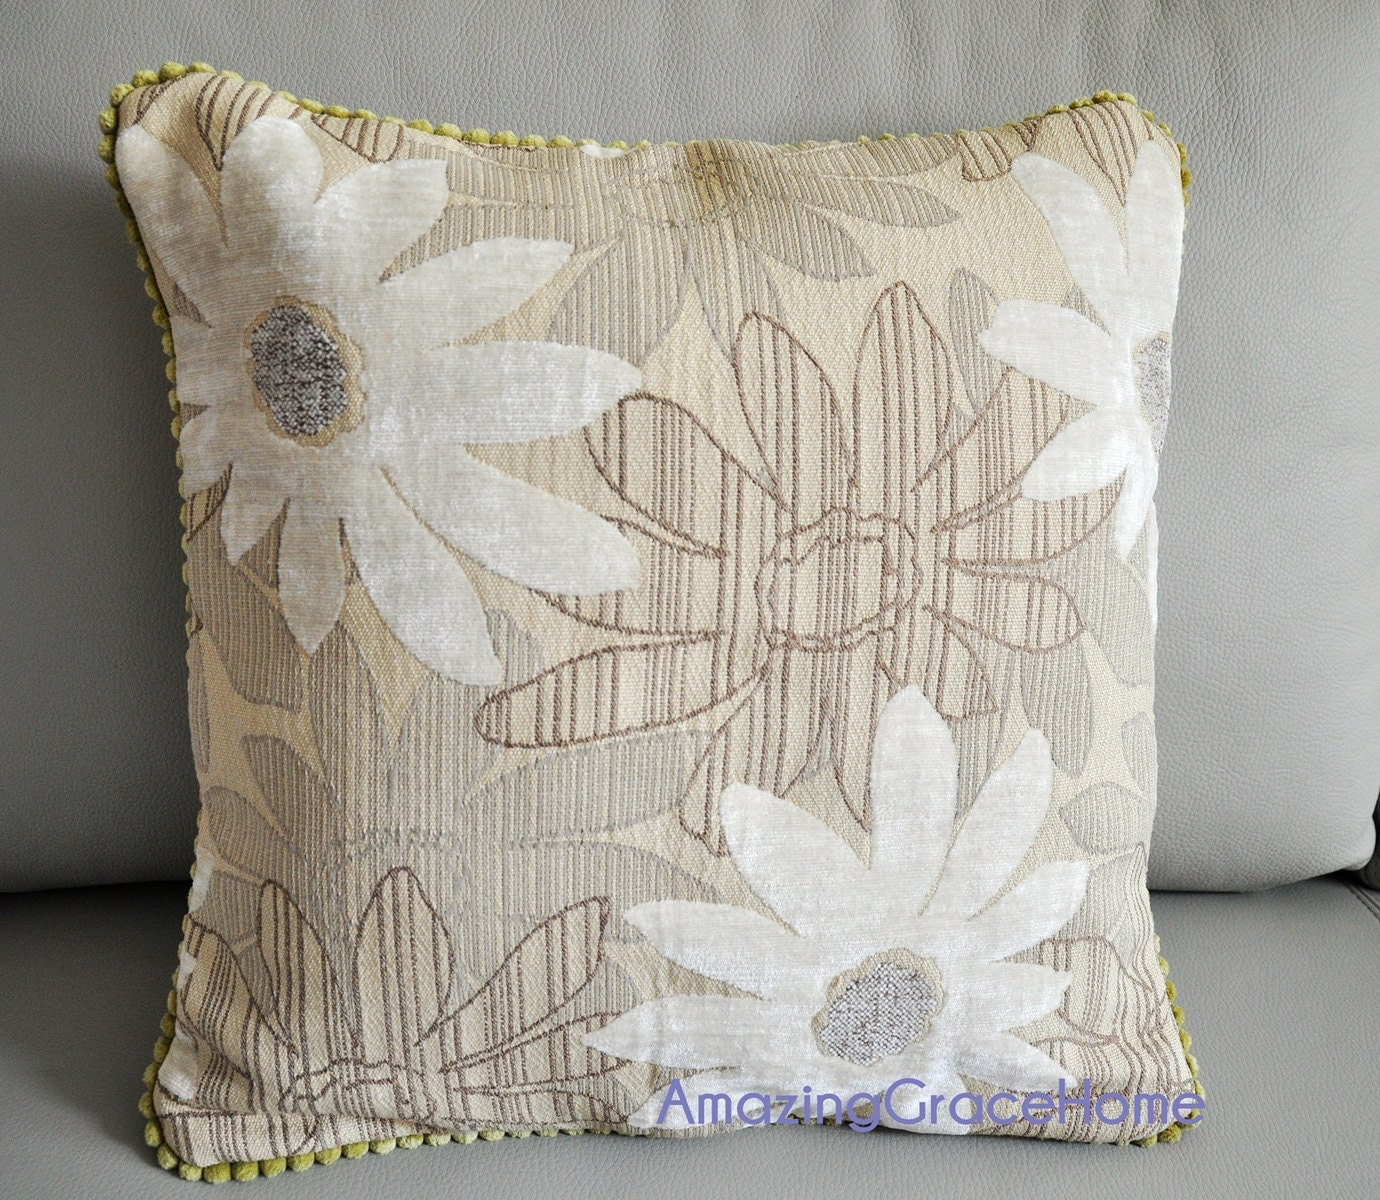 Chenille Throw Pillow Covers : White daisy pillow covers chenille Floral Velvet throw pillow